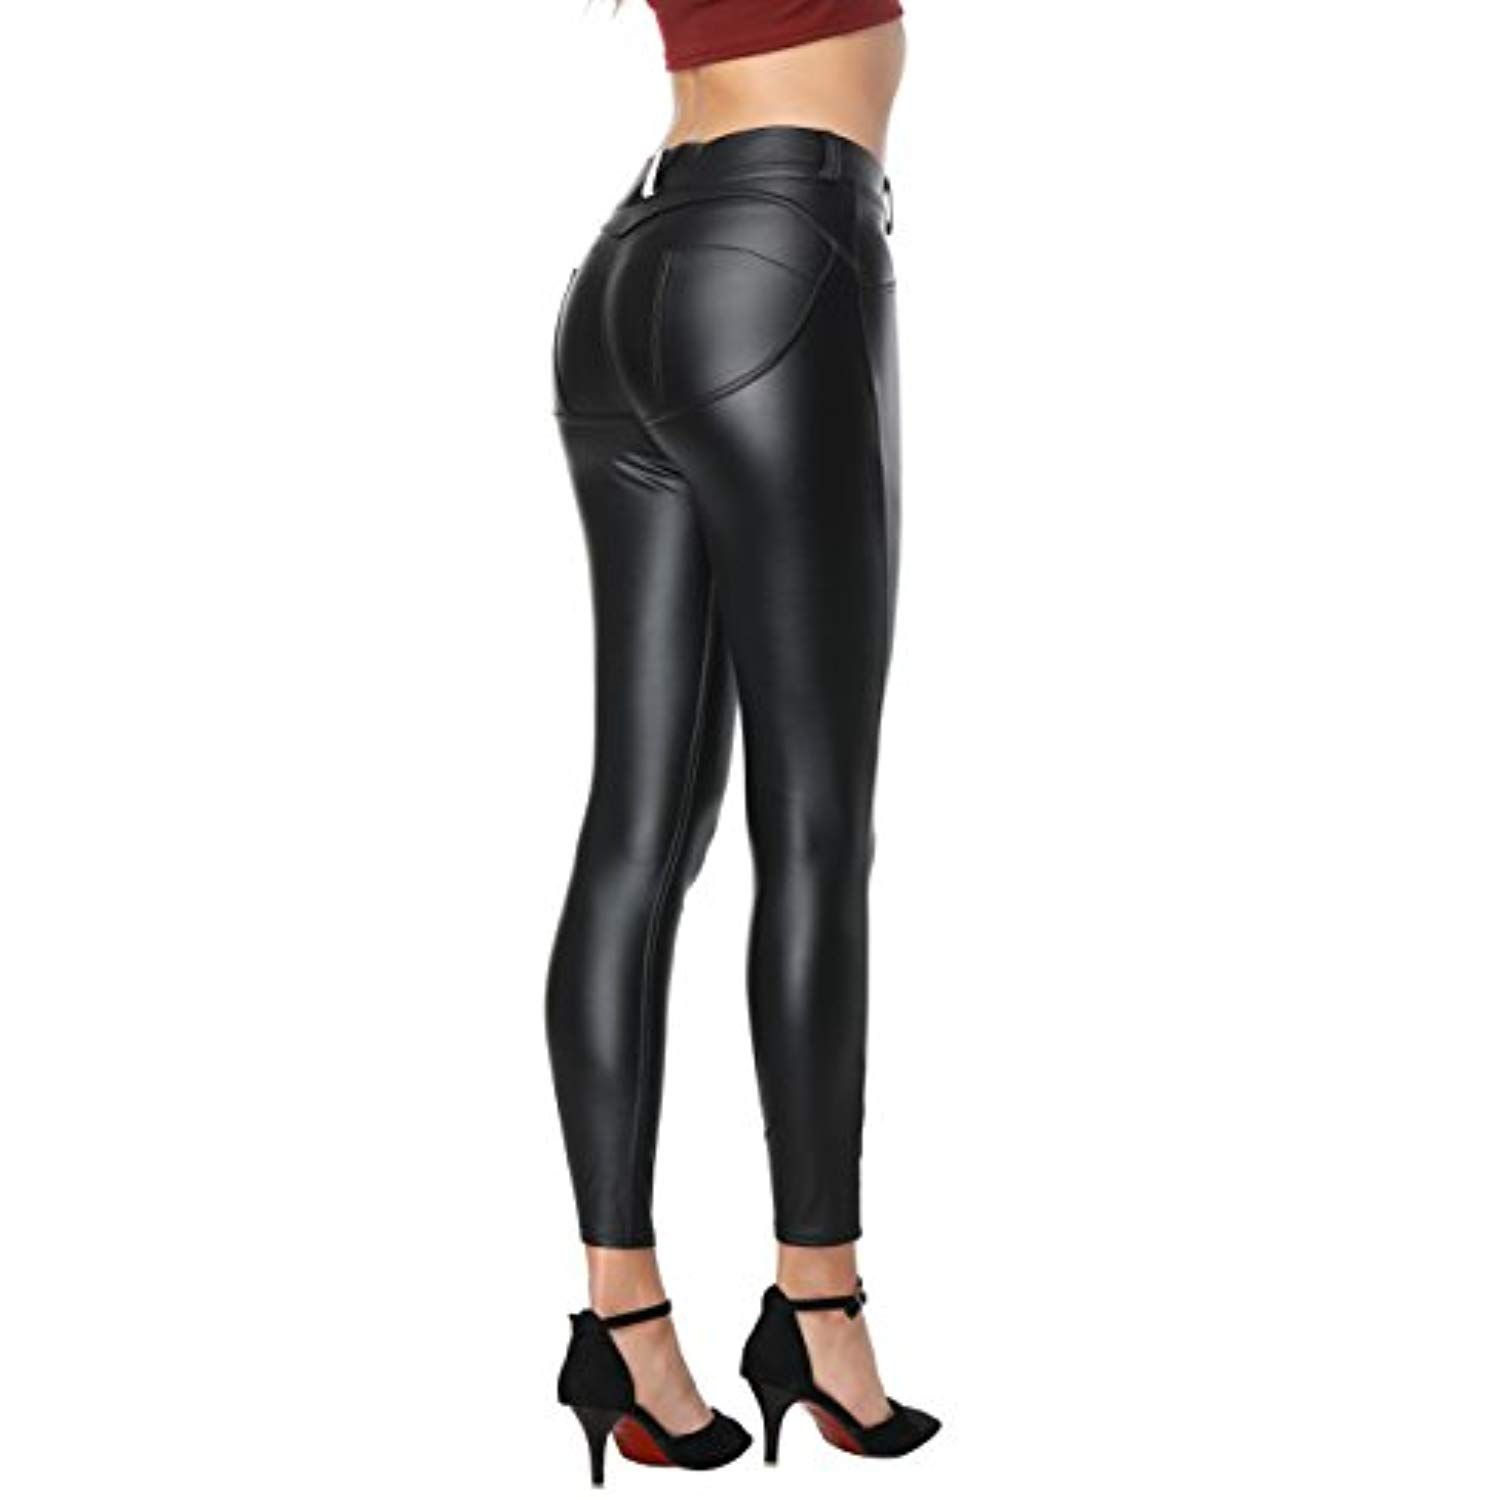 6846bd89d5cad3 Women Faux Leather Pants PU Sexy Elastic Pants Butt Lift Super Slim Leggings  * Check out this great product. (This is an affiliate link)